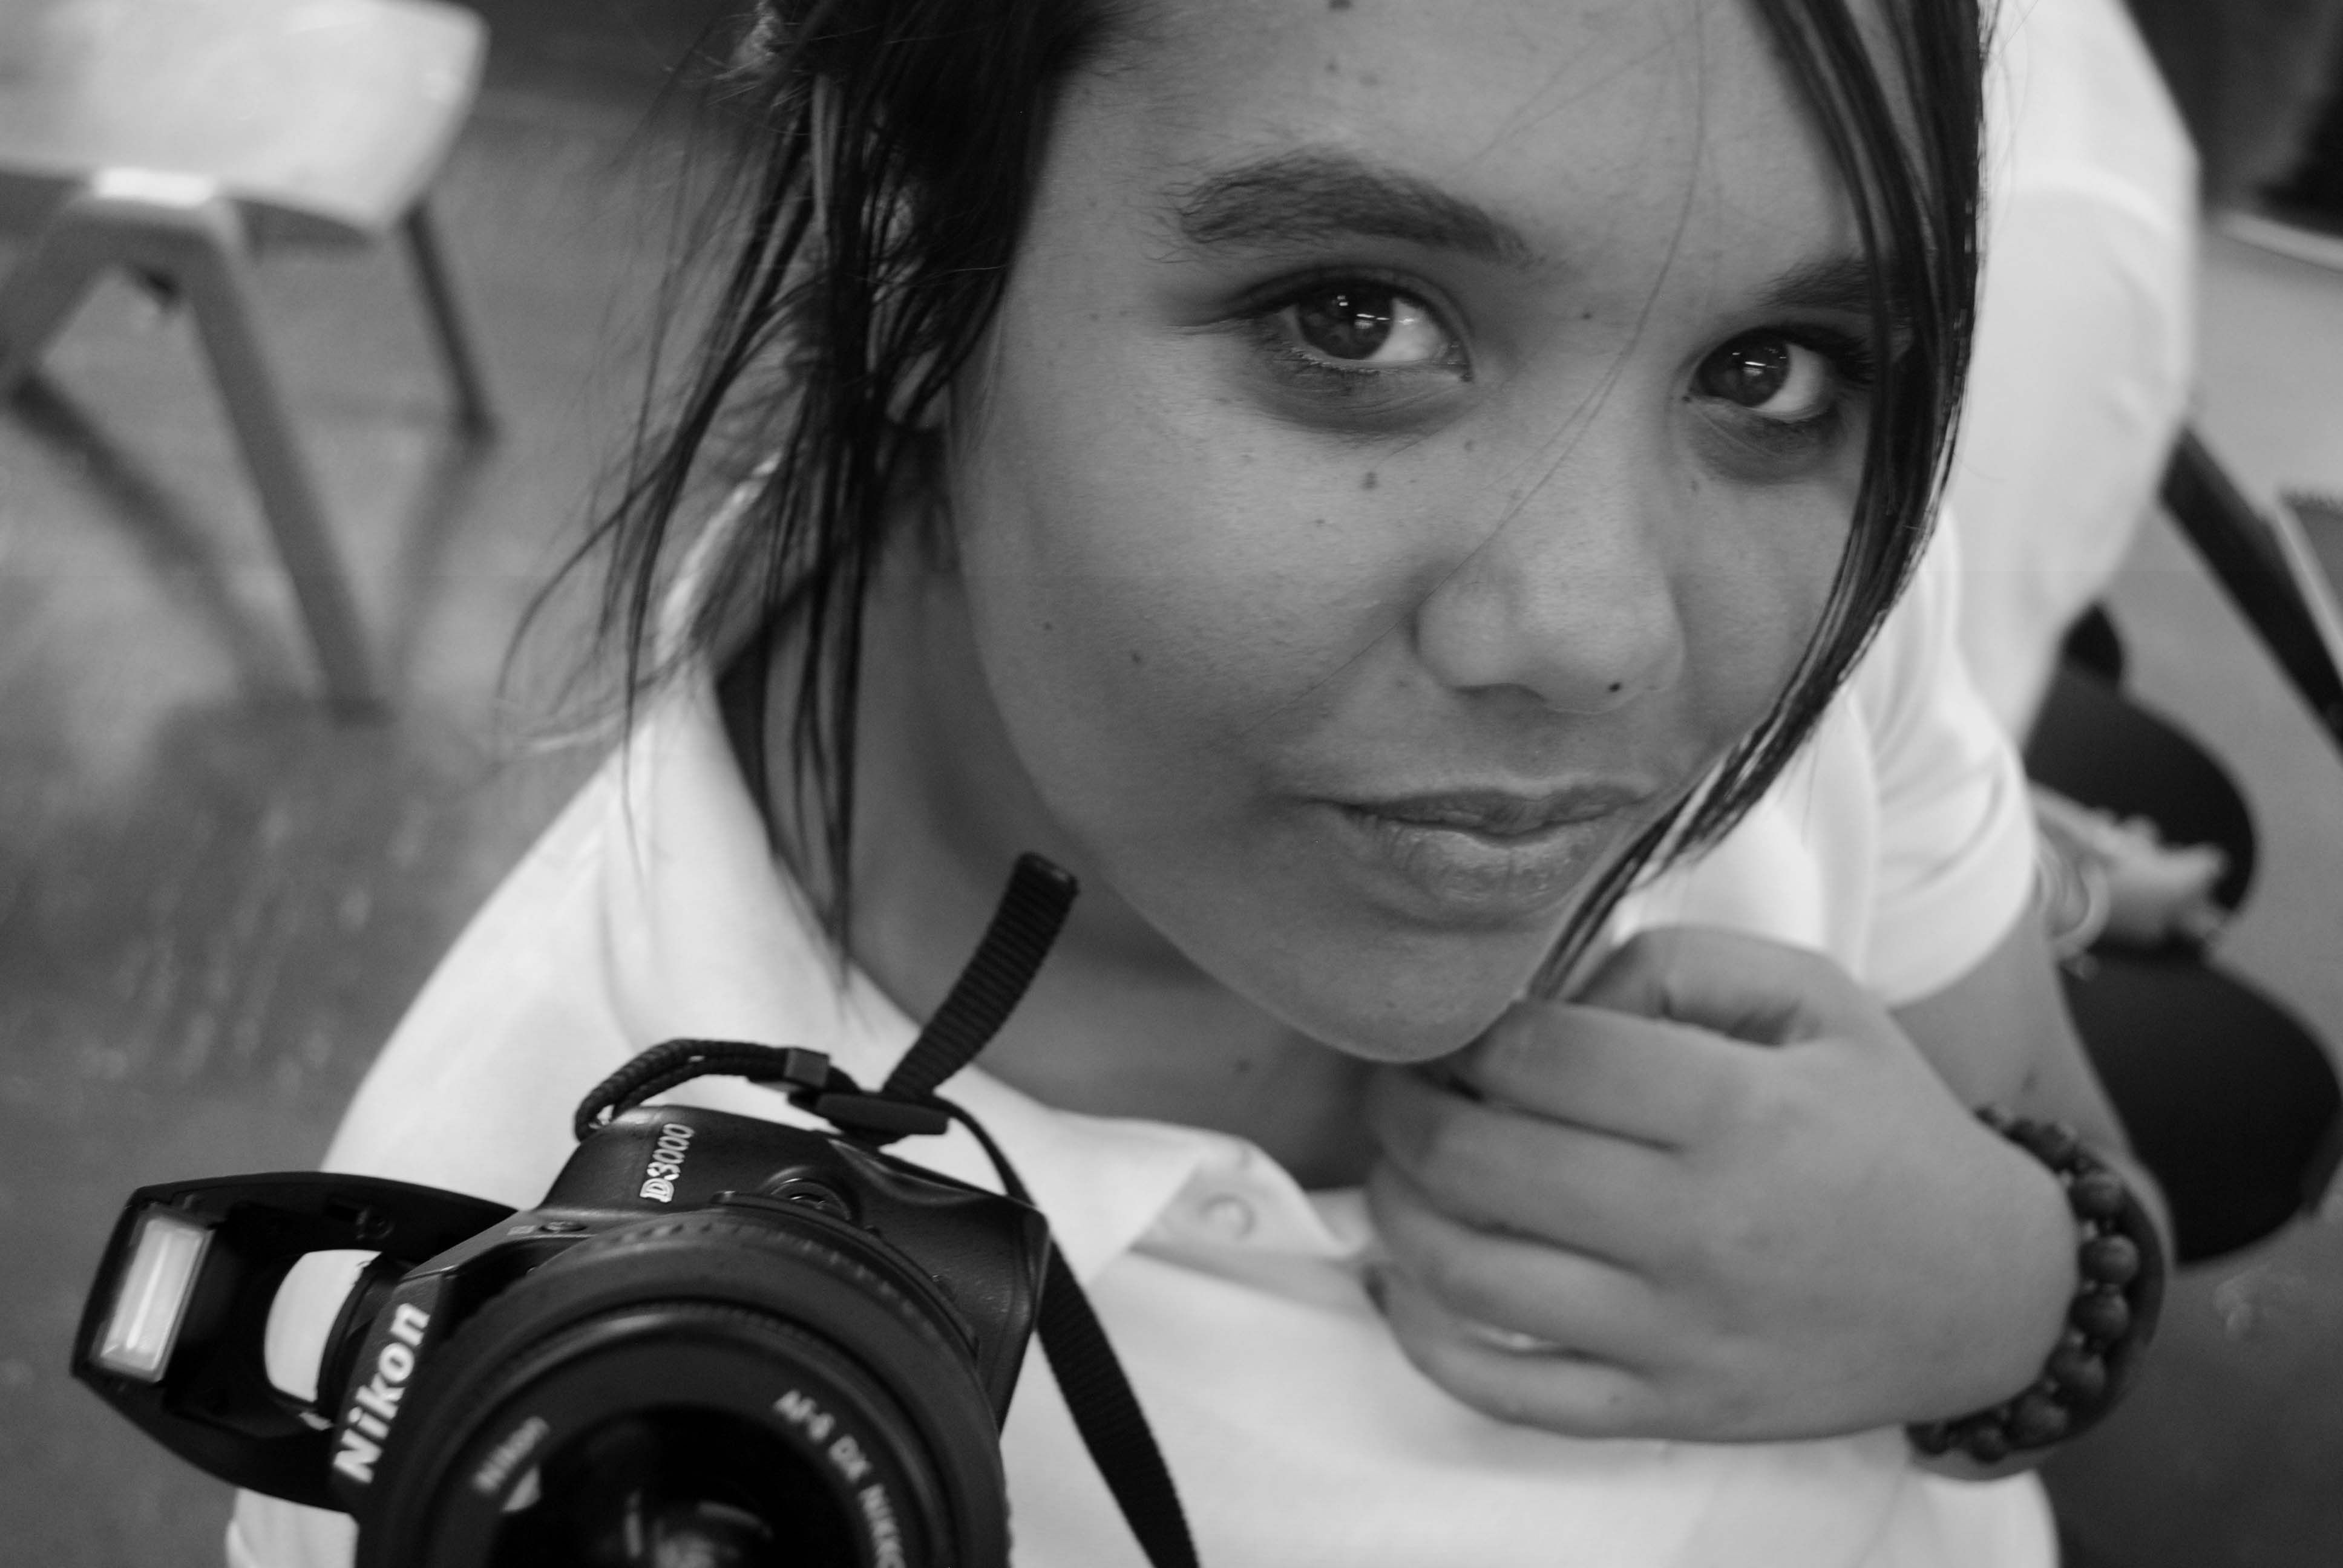 Photography student Year 11